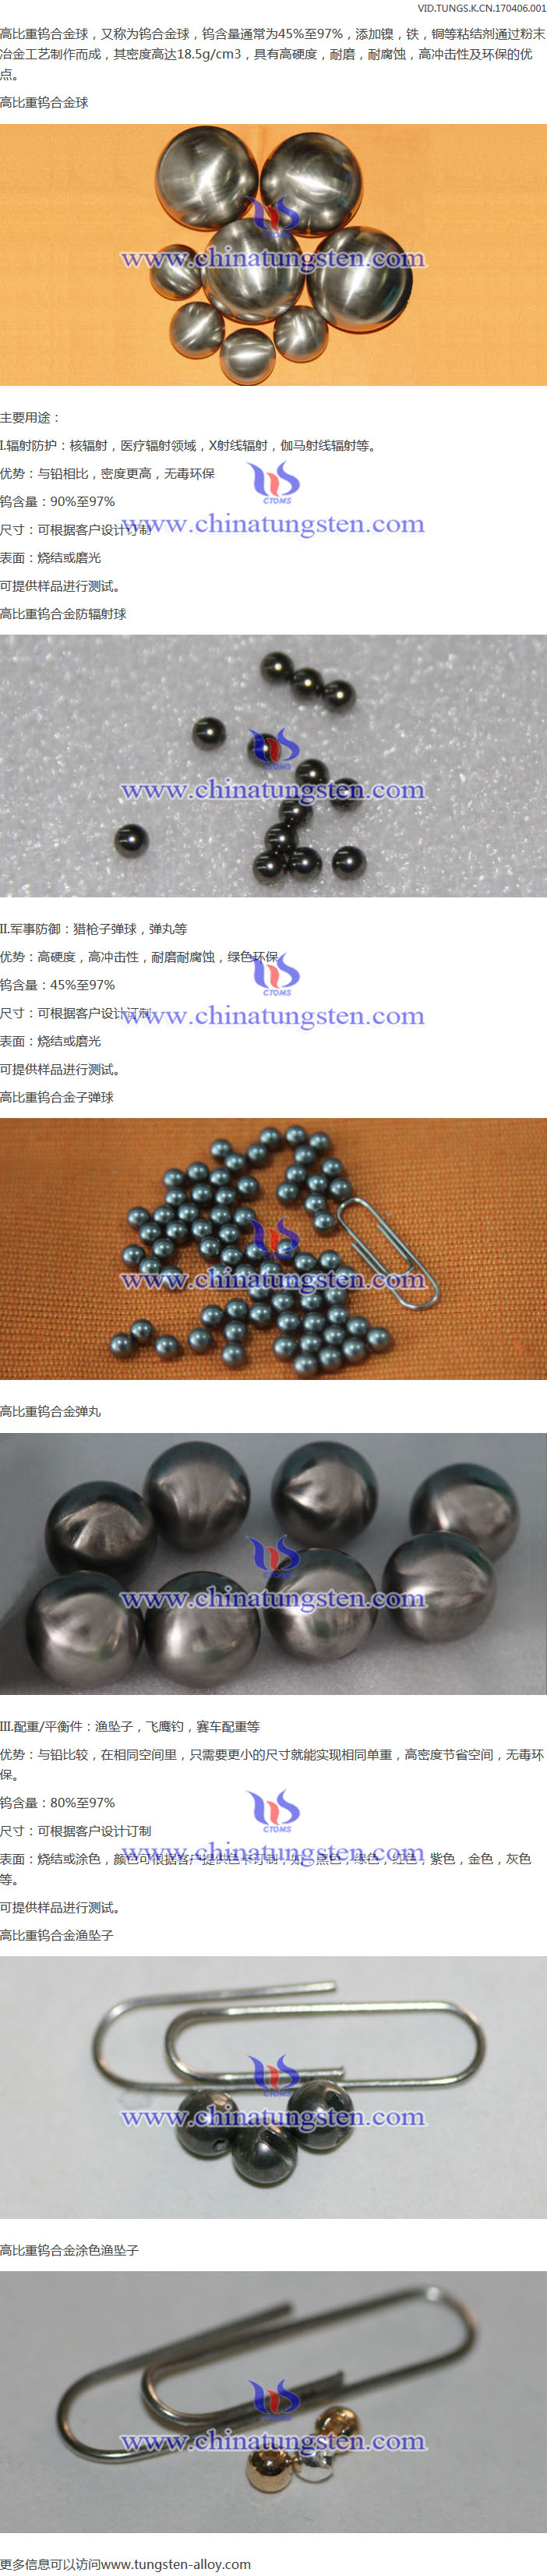 tungsten heavy alloy ball image